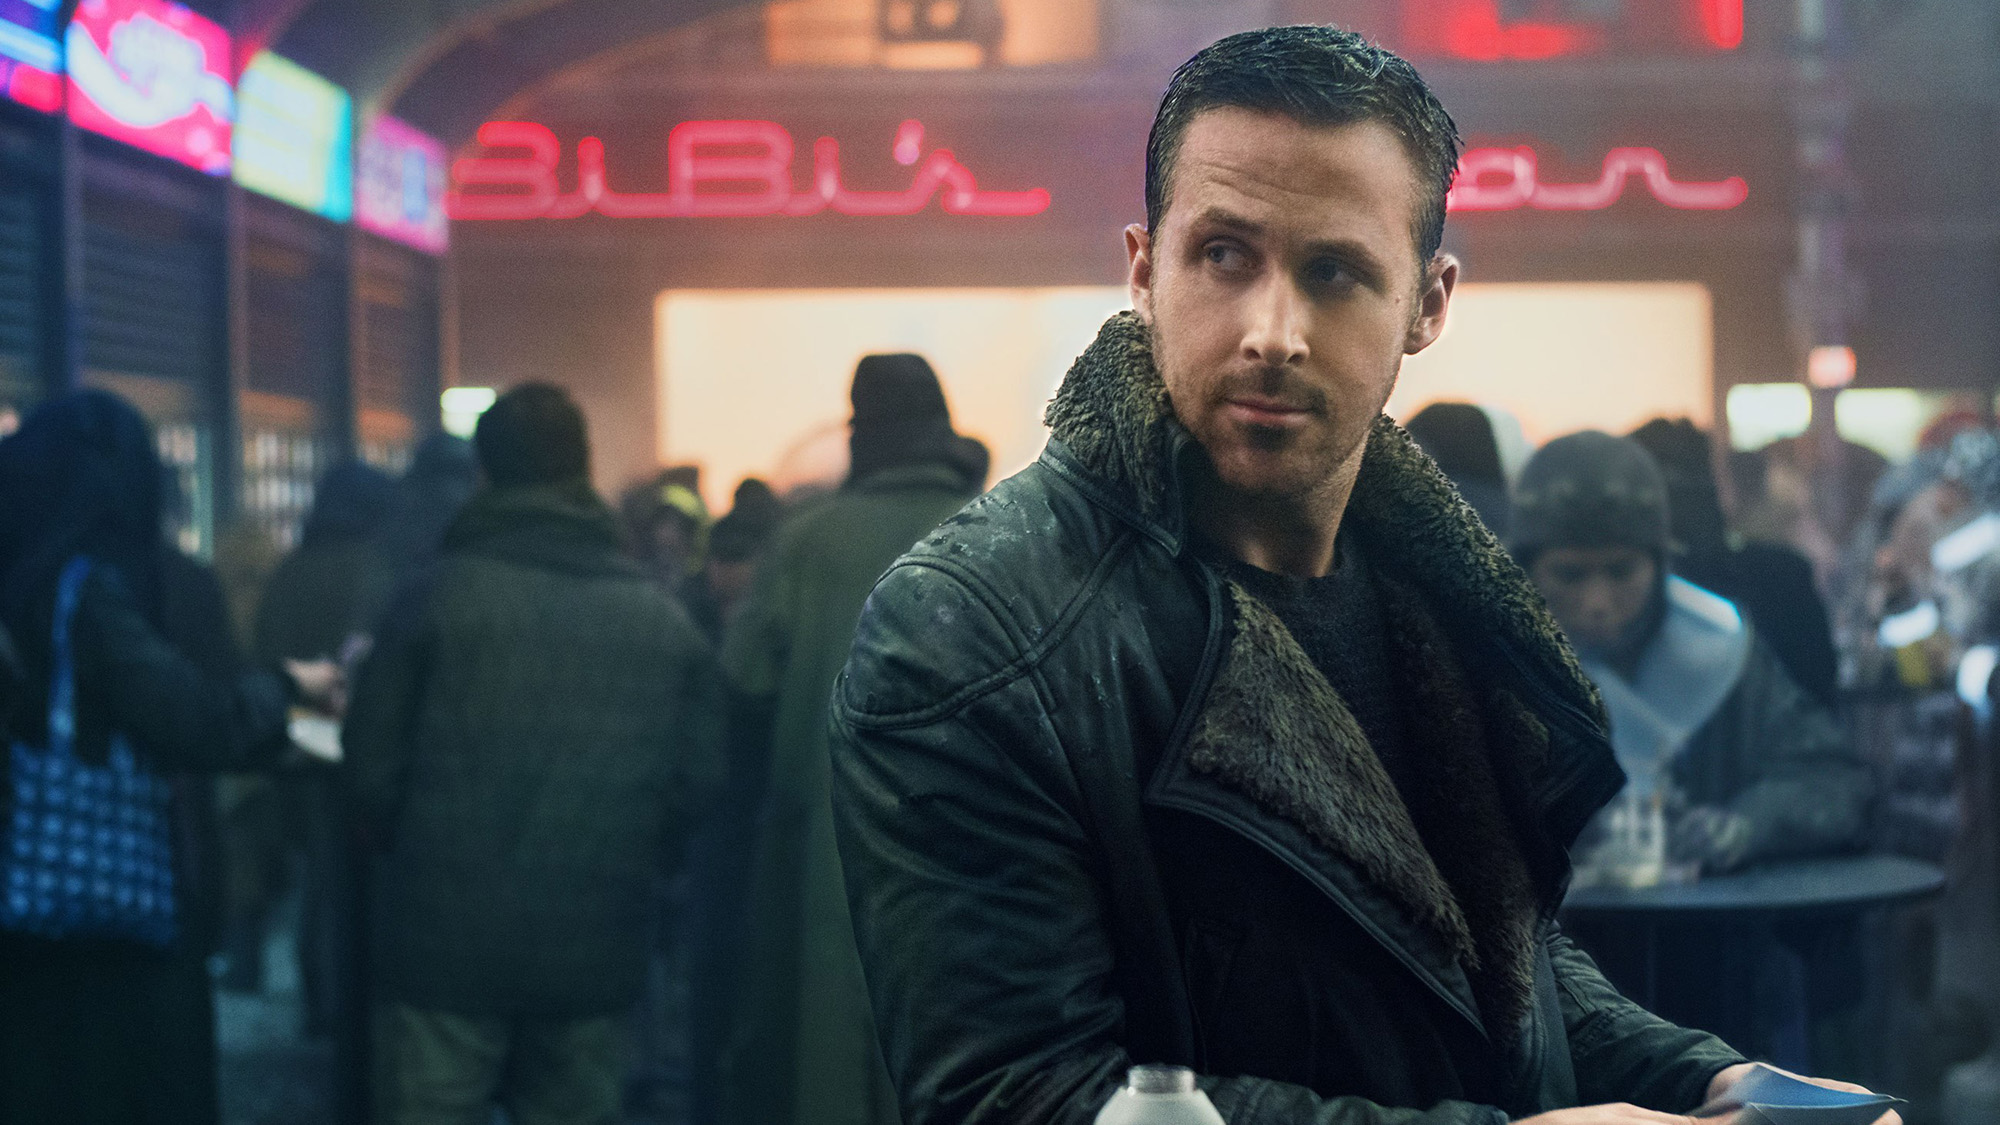 Ryan Gosling in 'Blade Runner: 2049'. (Pic: Warner Bros)